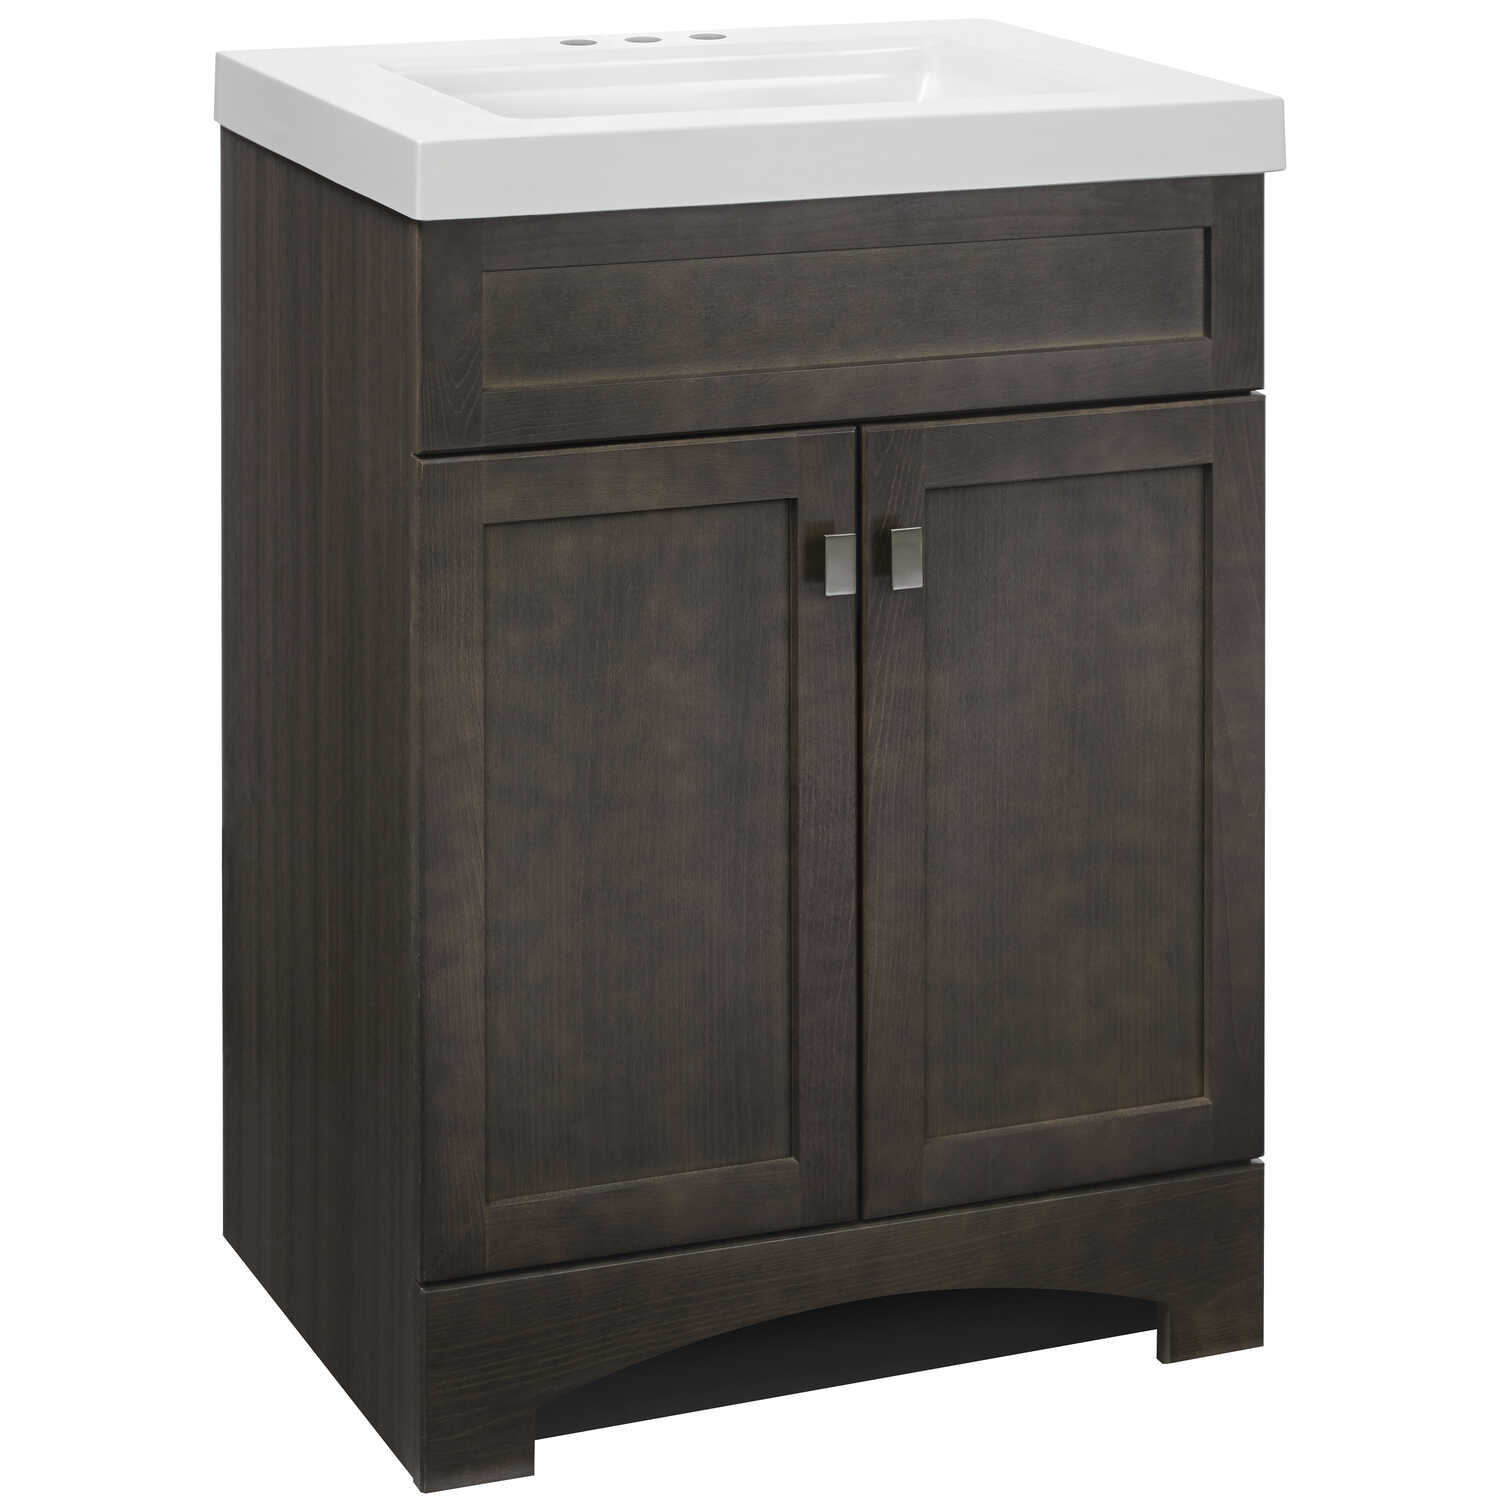 Continental Cabinets  Davison  Single  Semi-Gloss  Grey  Vanity Combo  24 in. W x 18 in. D x 33-1/2